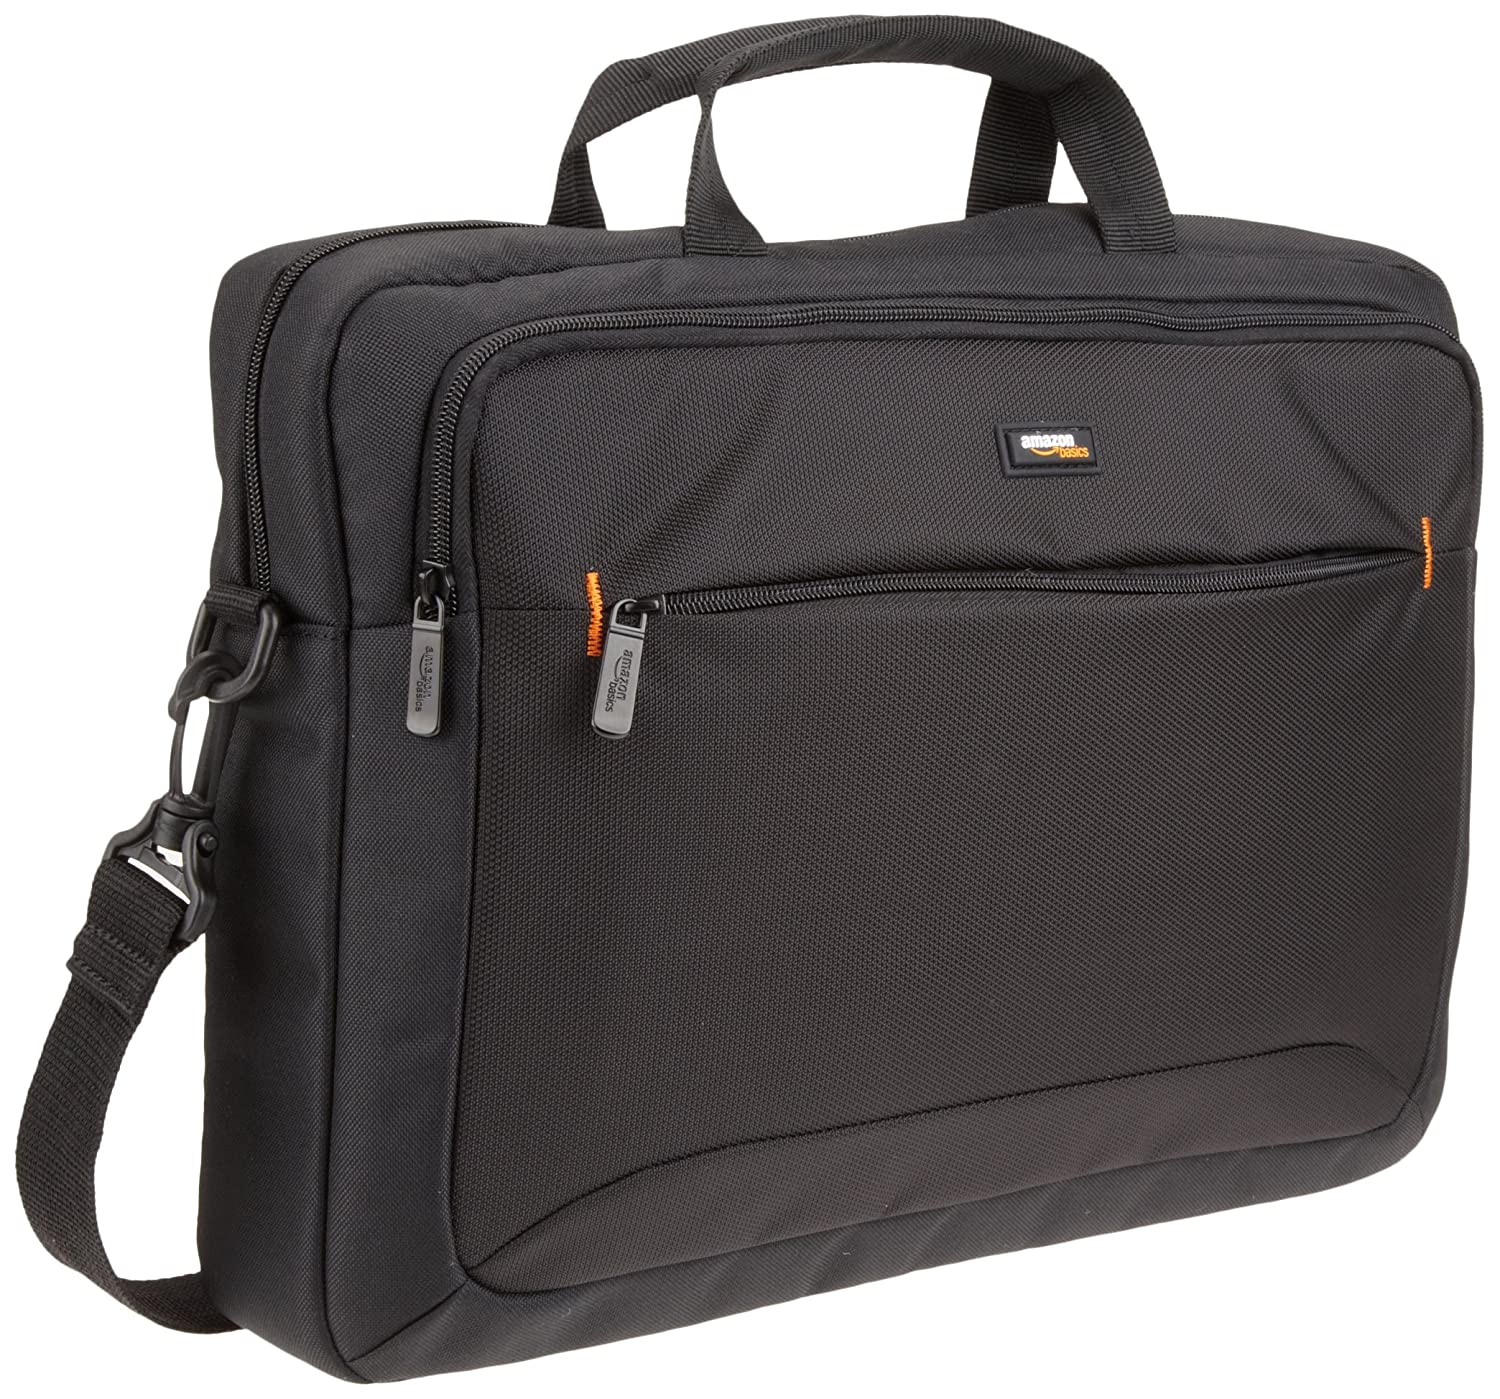 c331a88093cb AmazonBasics 15.6-Inch Laptop Computer and Tablet Shoulder Bag Carrying Case